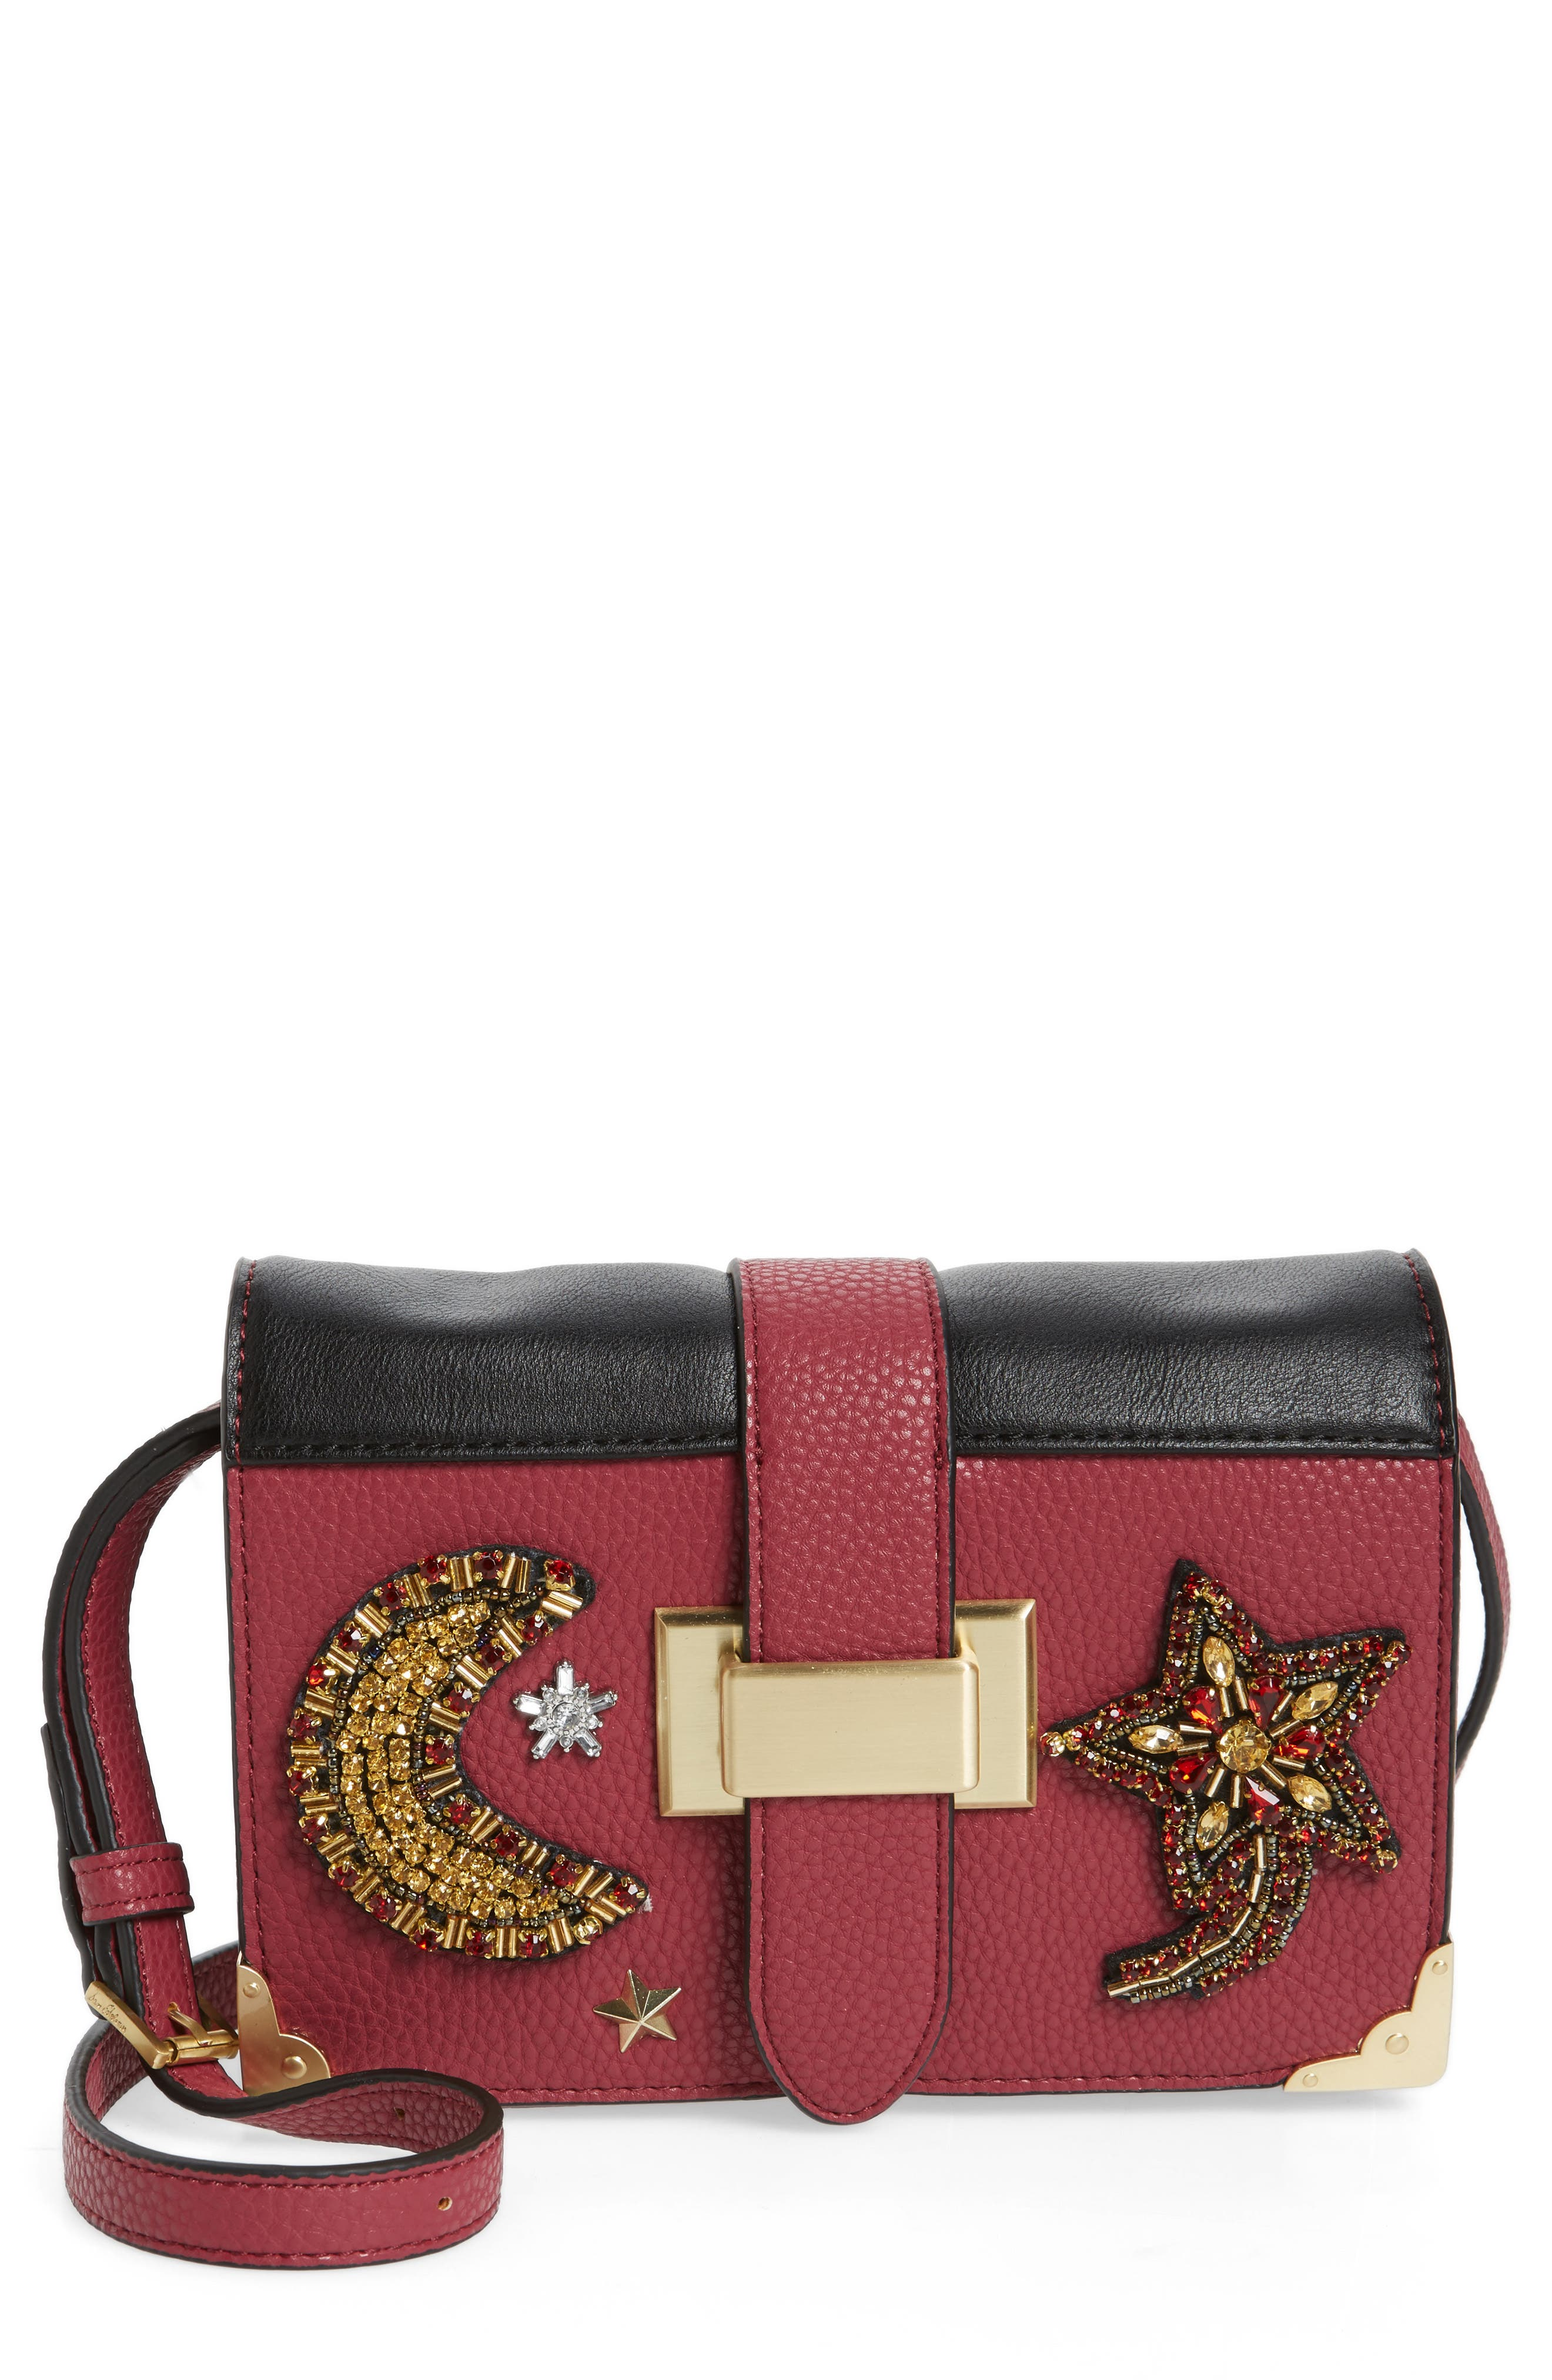 Alternate Image 1 Selected - Sam Edelman Florence Faux Leather Clutch Wallet